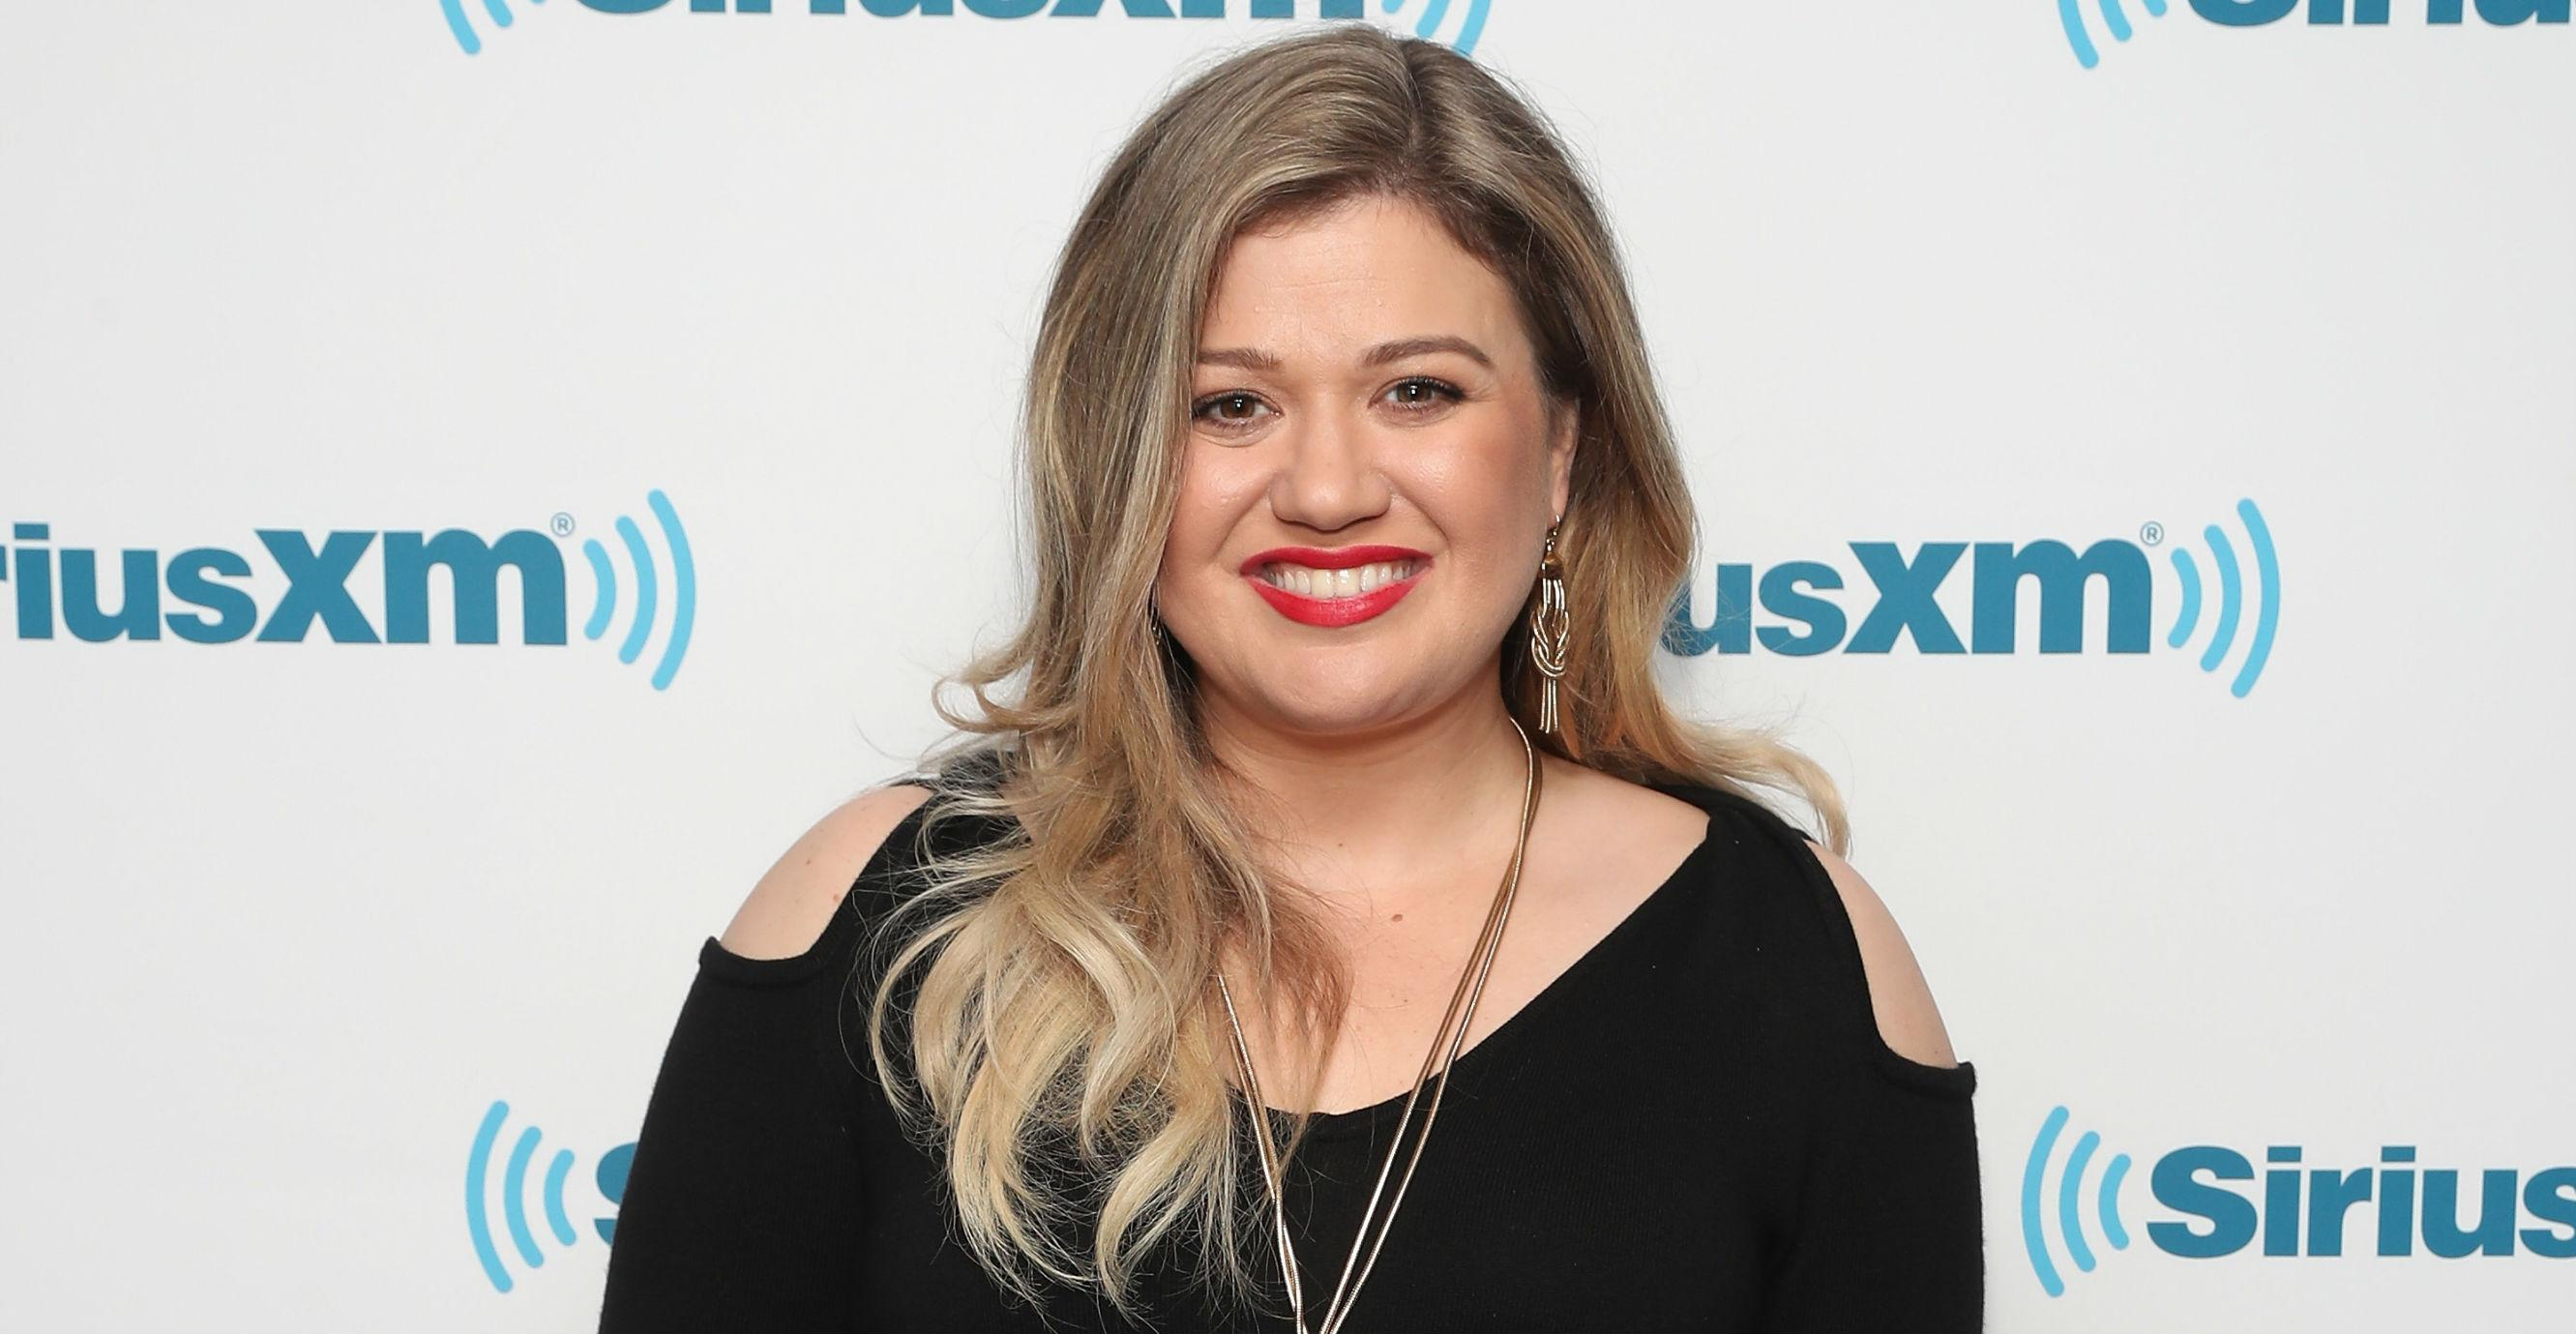 Kelly Clarkson announces 'Meaning of Life' album